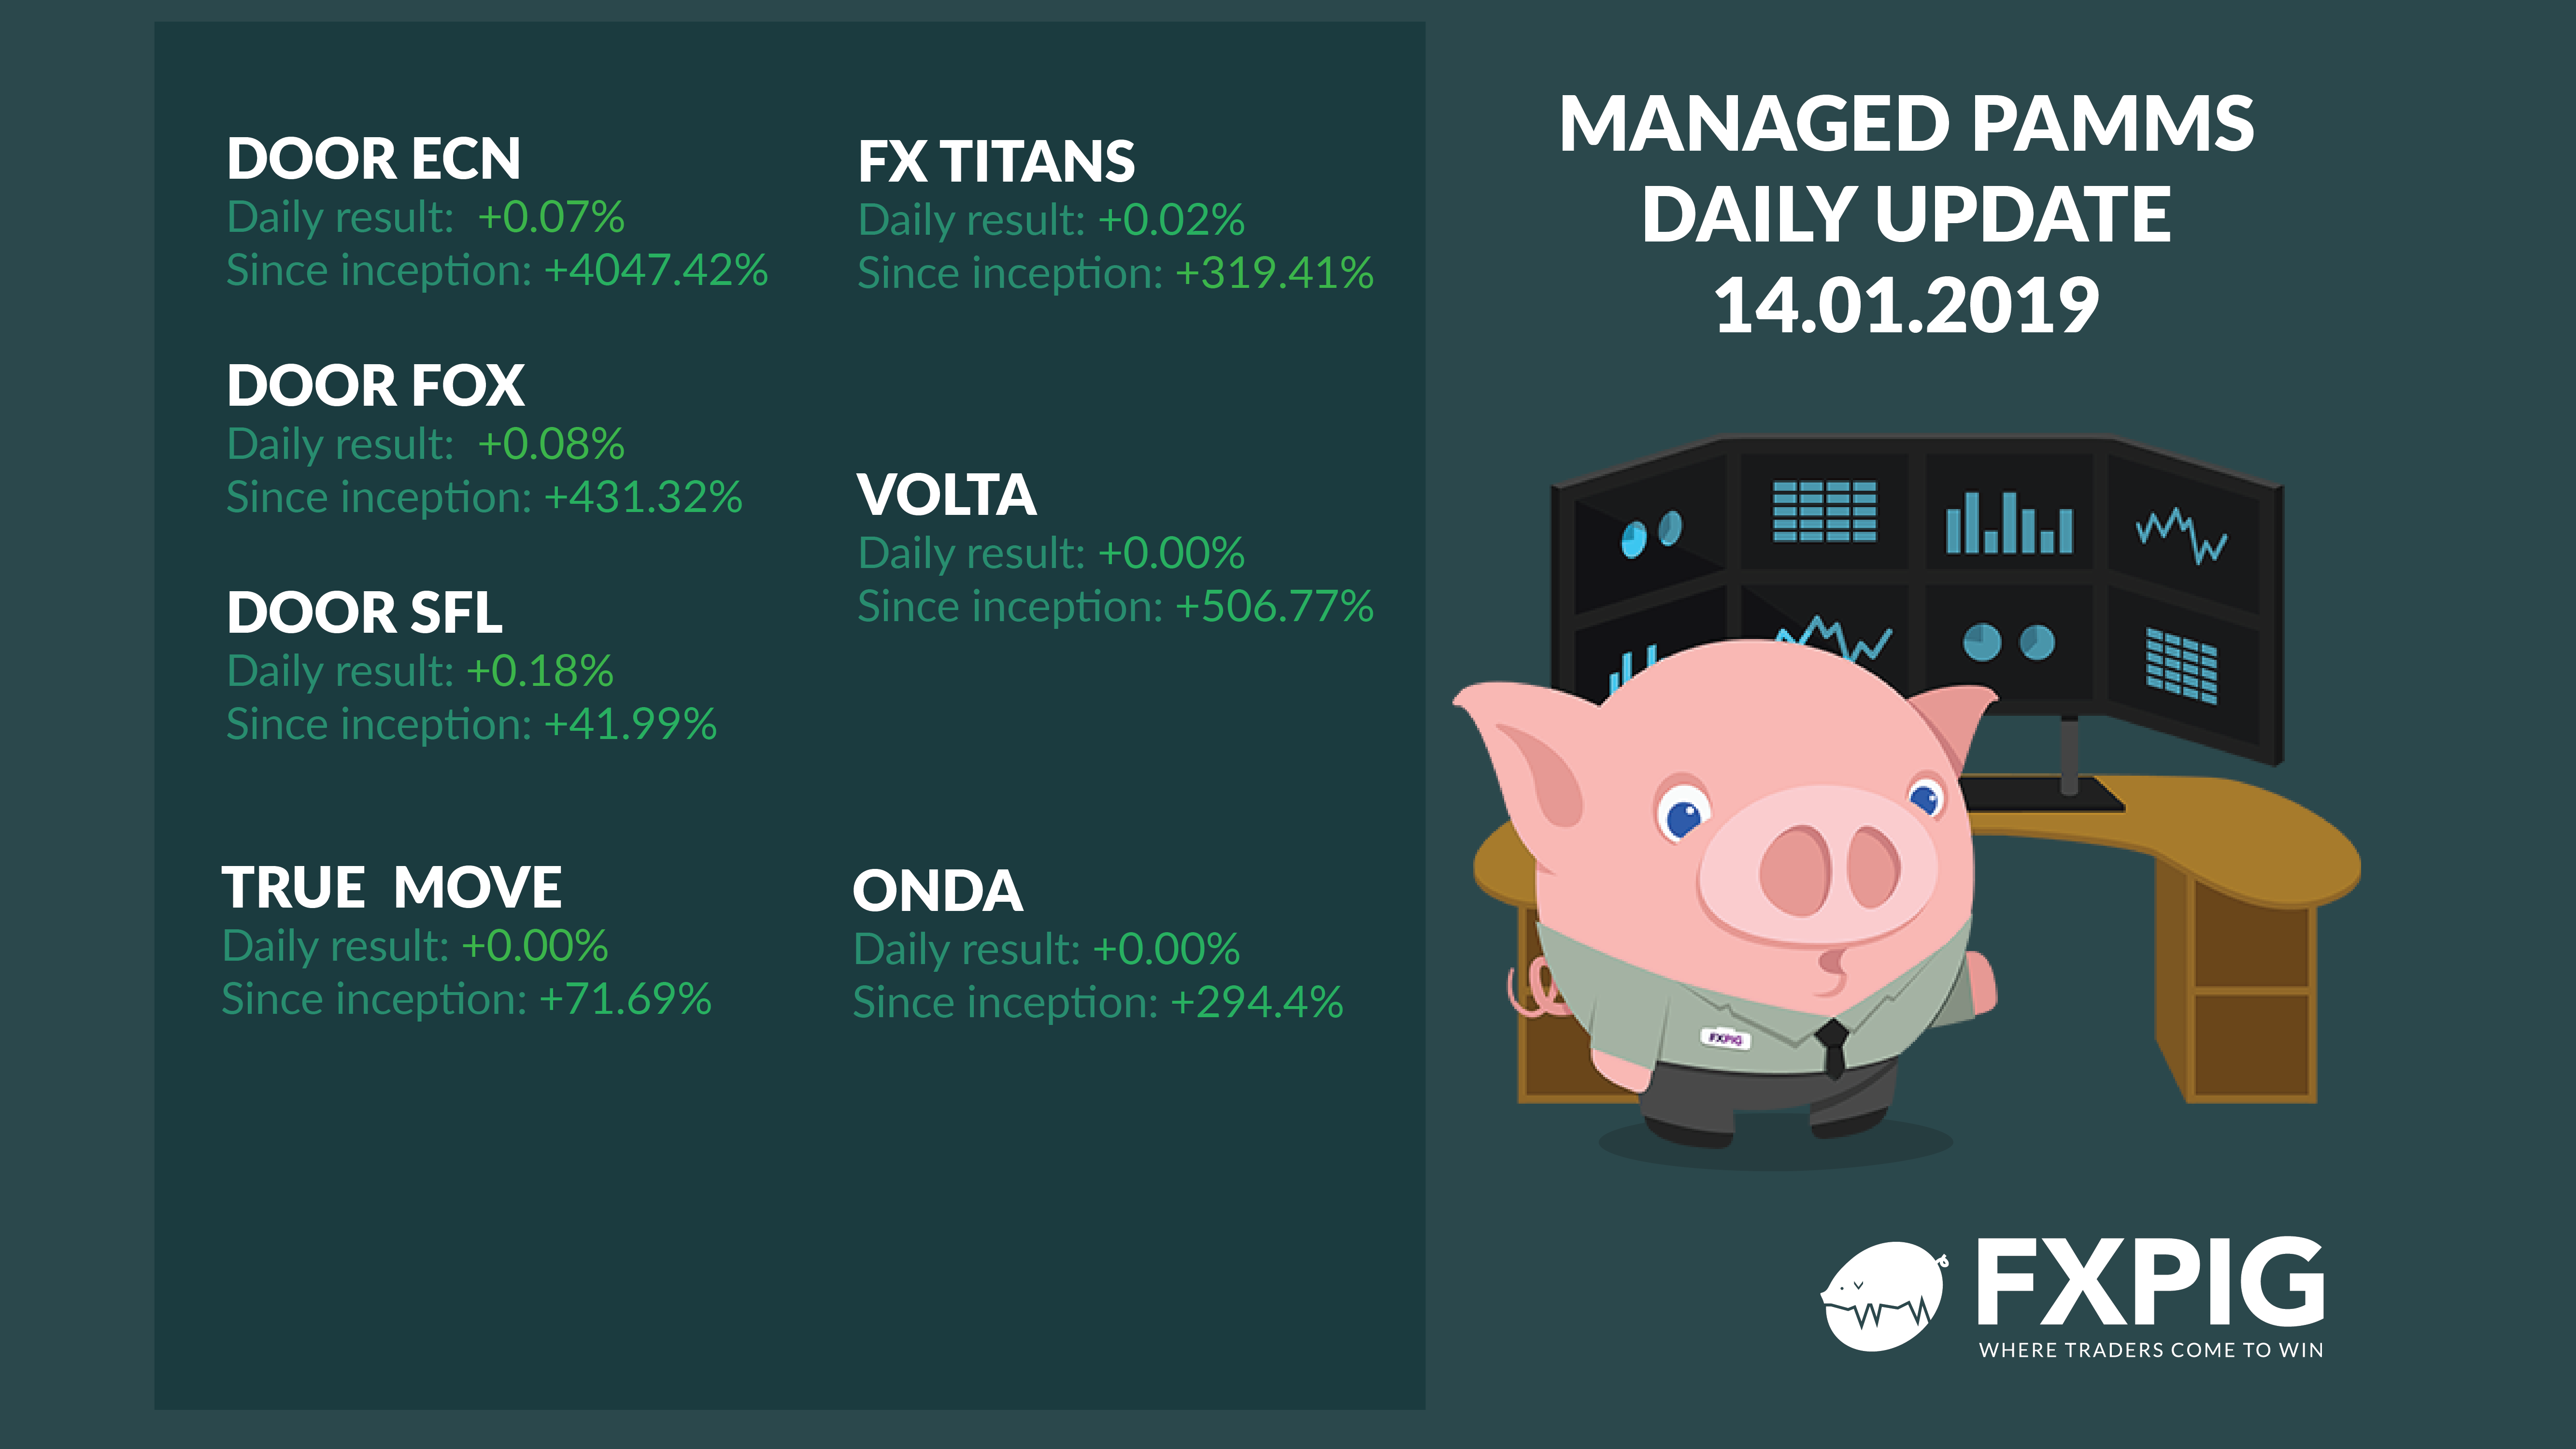 Forex_Trading_Fx_Trader_FXPIG_PAMMS_MANAGED_ACCOUNTS_PROFIT_14.01.2019